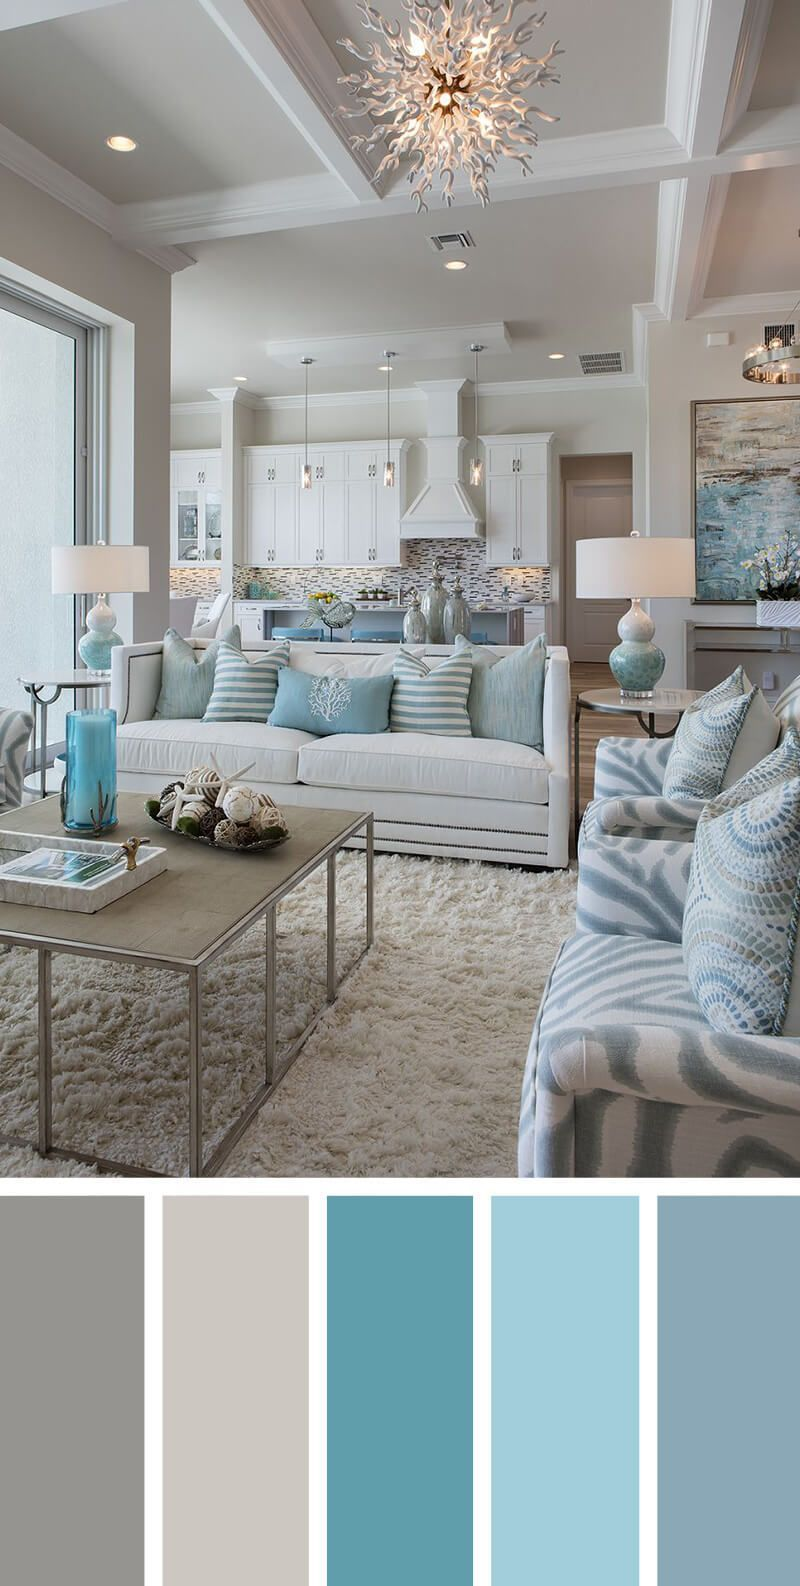 Florida Homes Decor Coastal Style 15 Best Decoration Ideas #coastal #decor